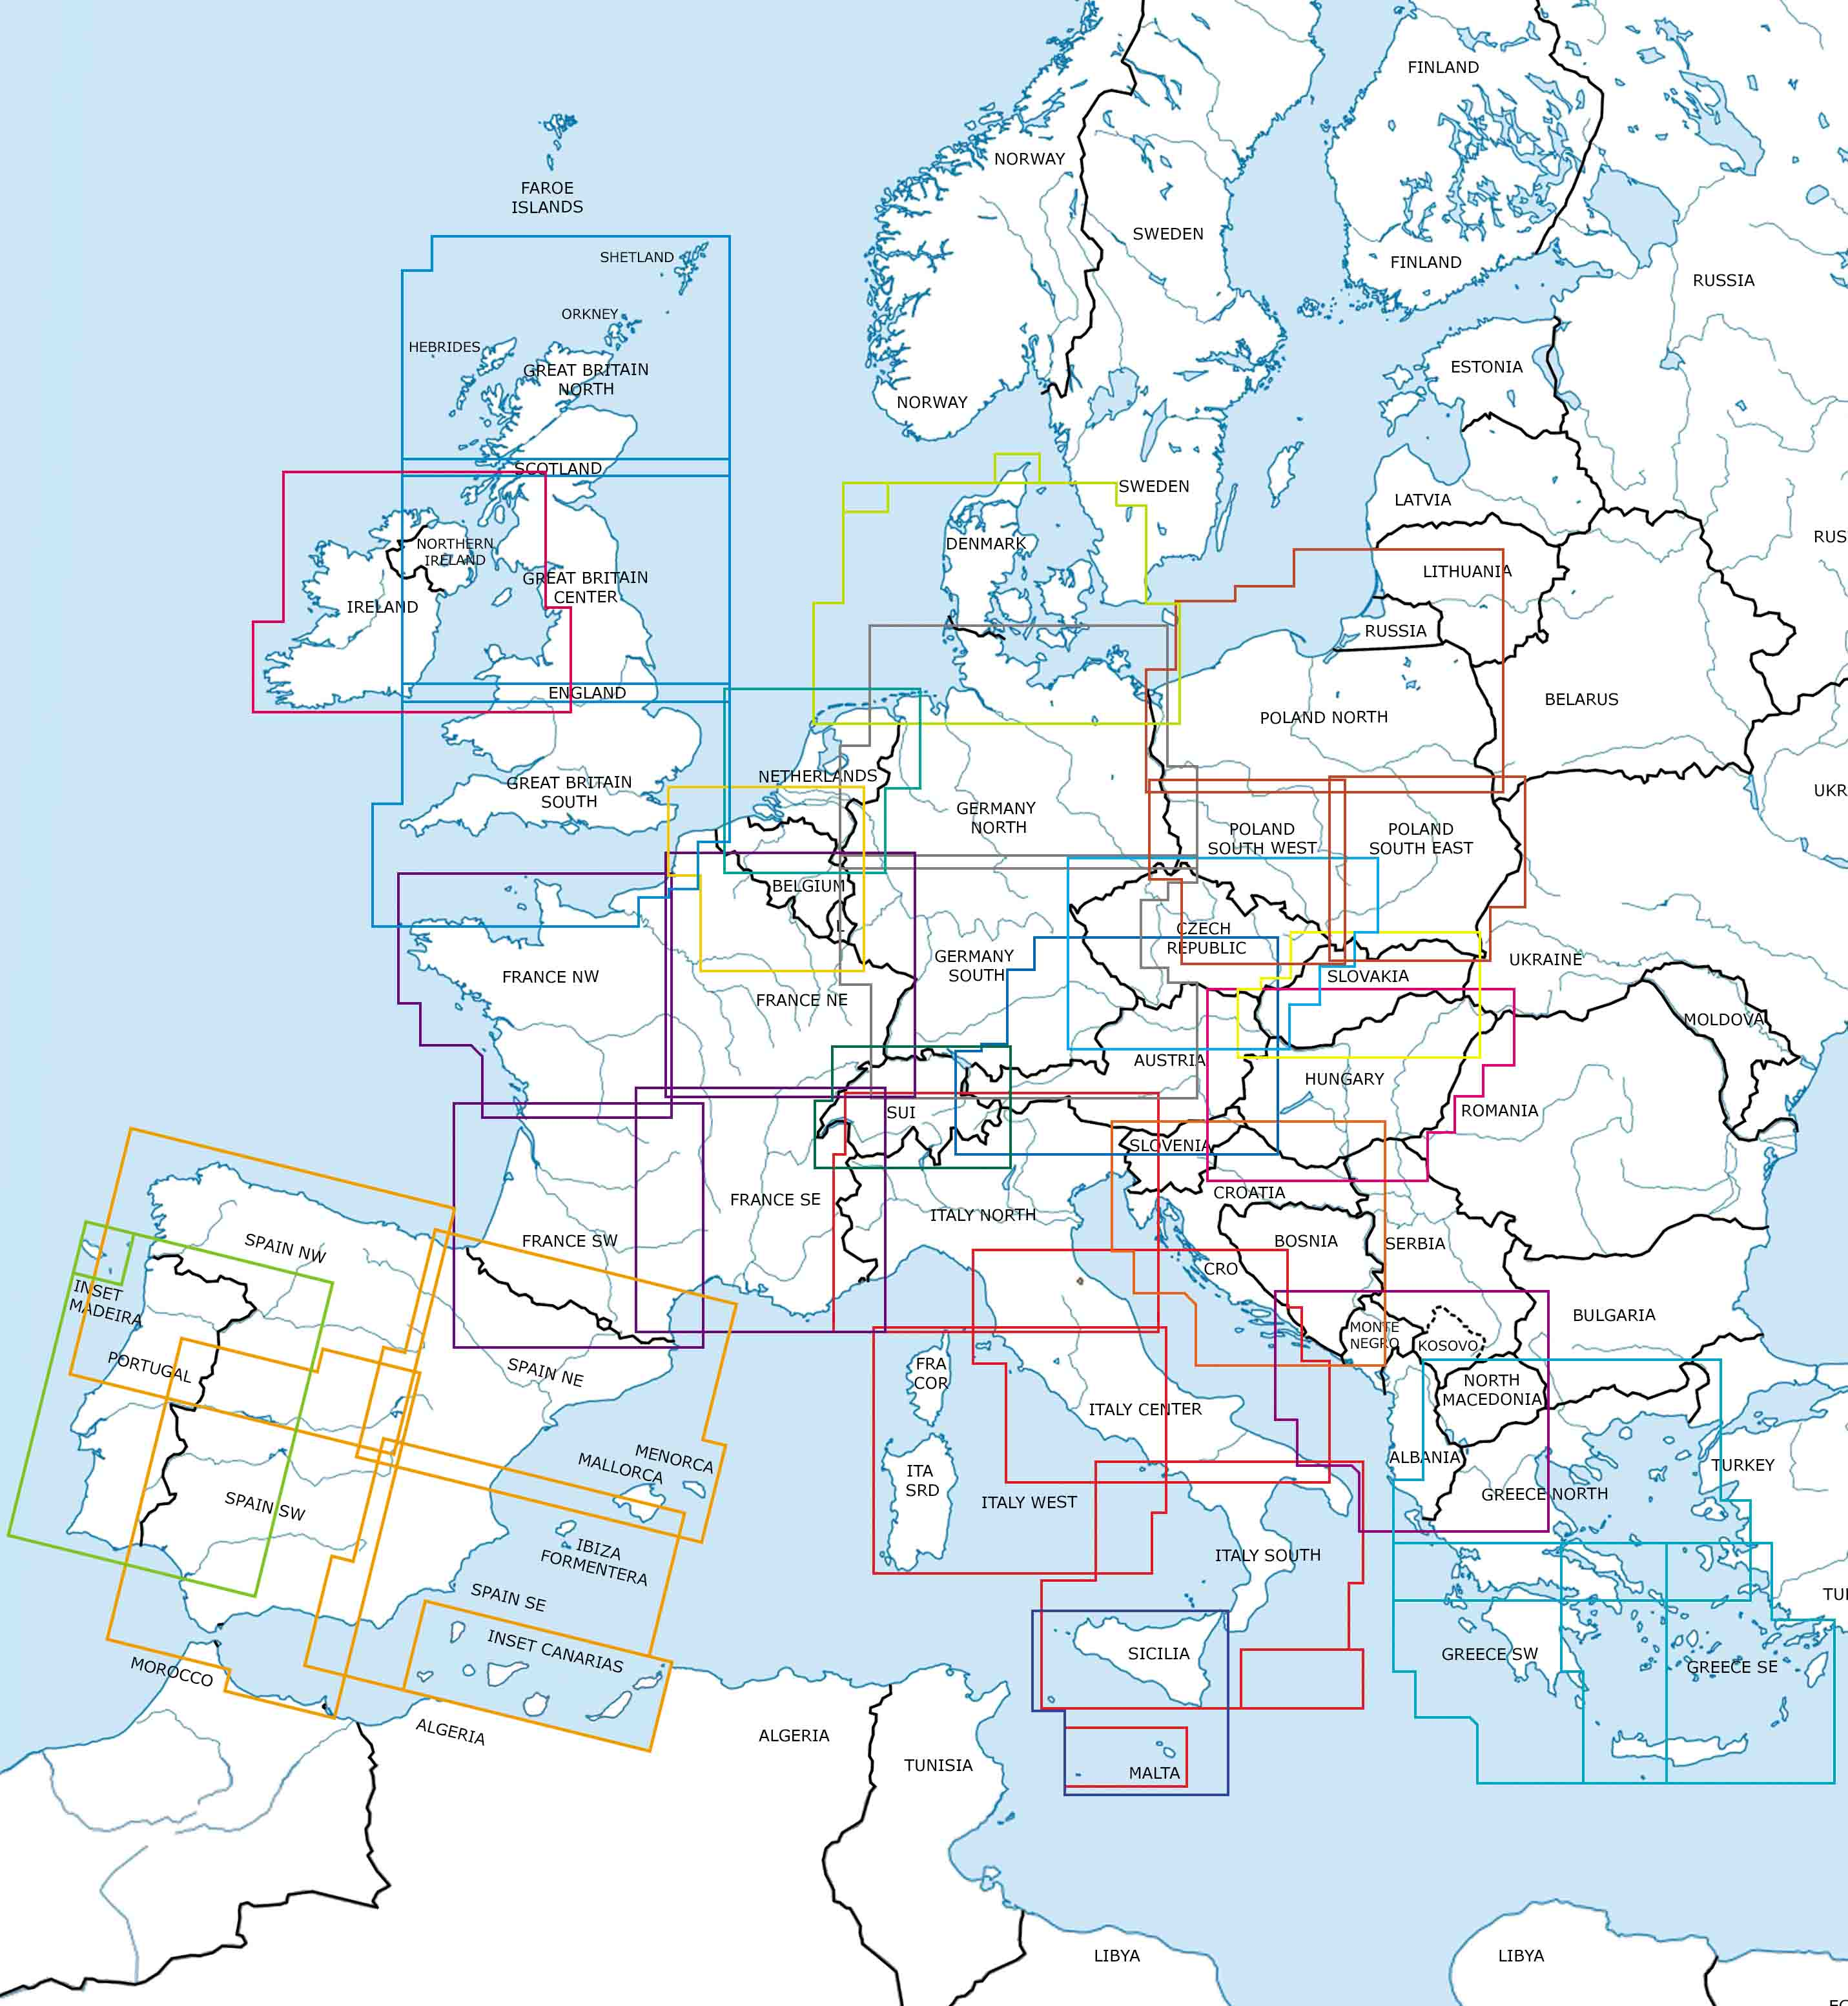 Rogers Data VFR Aeronautical Charts - ICAO Chart Europe